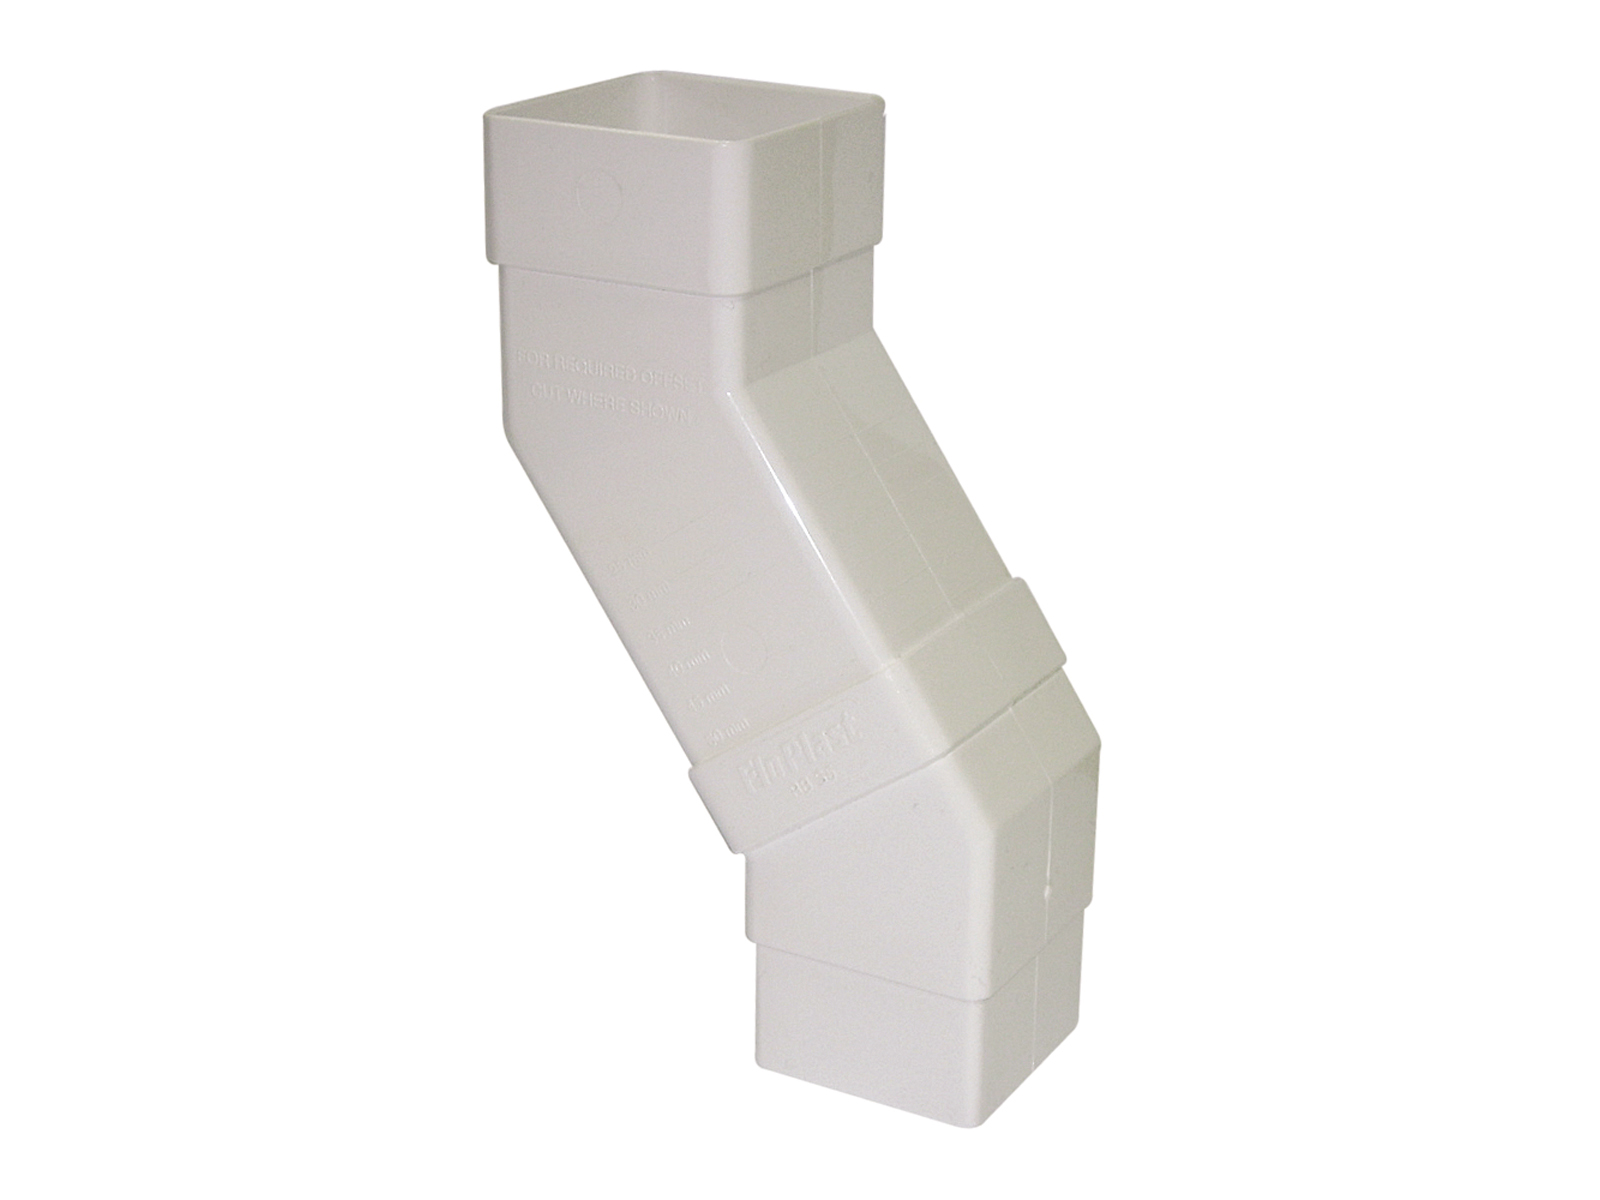 FLOPLAST 65MM SQUARE DOWNPIPE - RBS5 ADJUSTABLE OFFSET BEND - WHITE